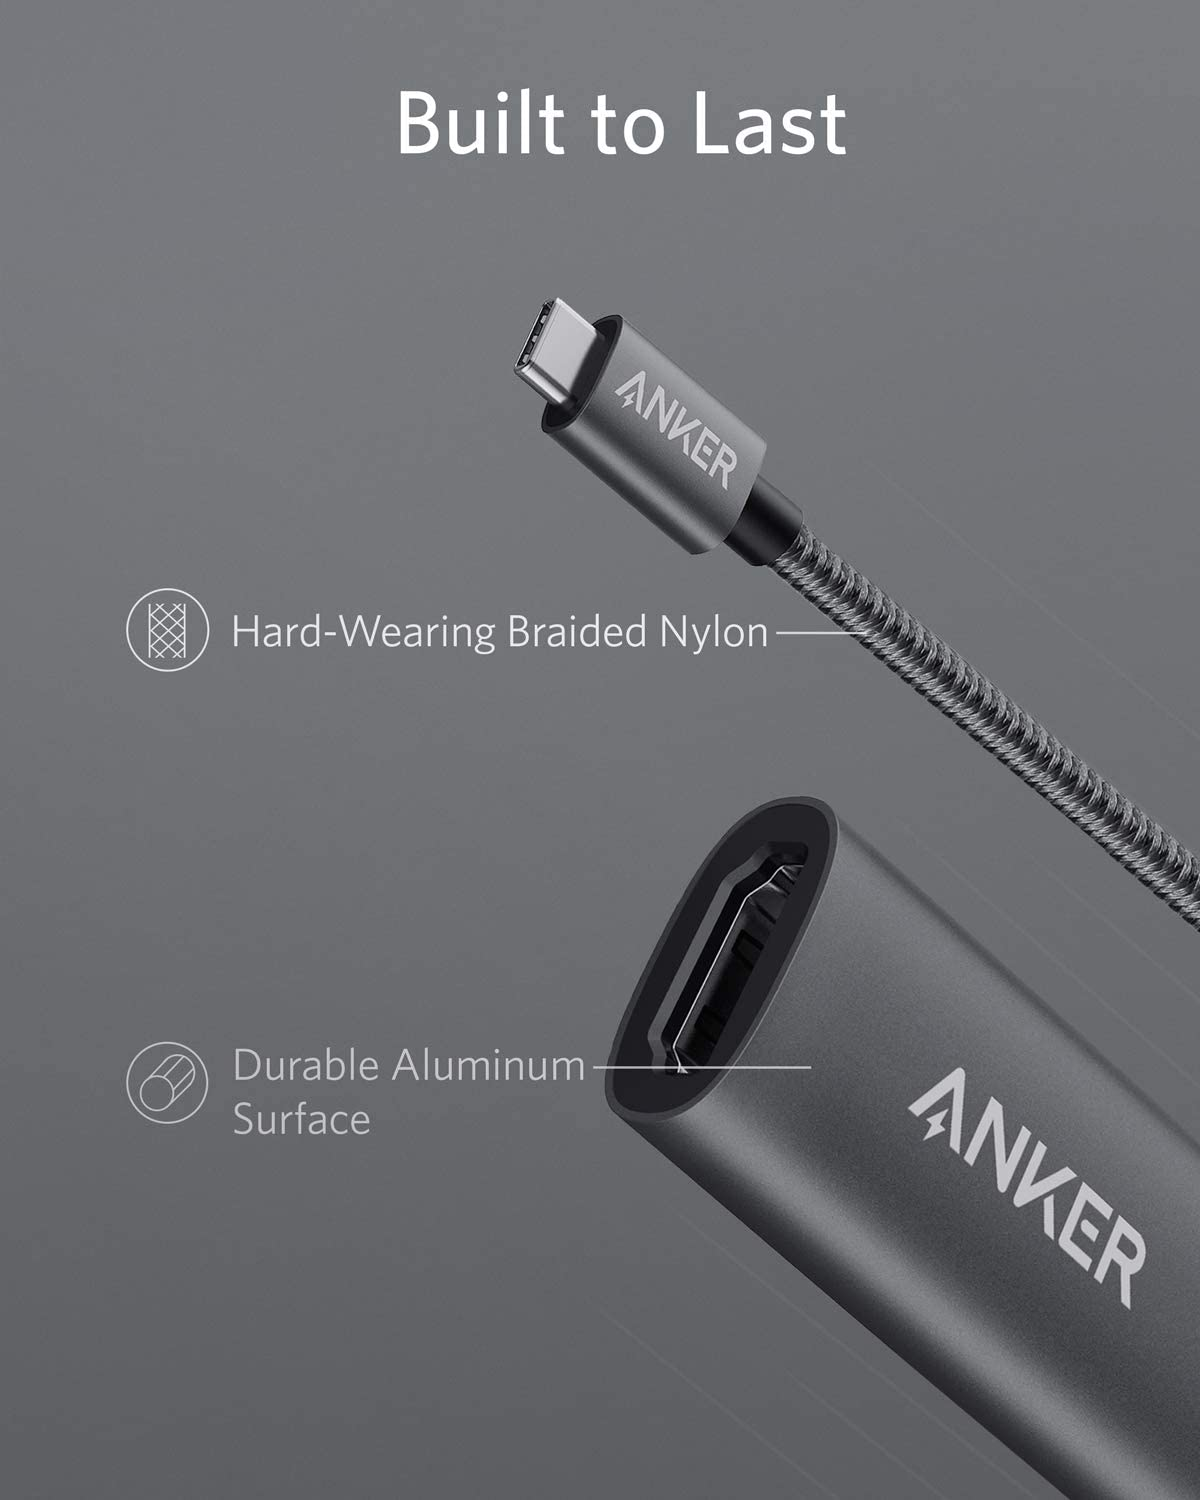 Anker USB C to HDMI Adapter (4K@60Hz), PowerExpand+ Aluminum Portable USB C Adapter, for MacBook Pro, MacBook Air, iPad Pro, Pixelbook, XPS, Galaxy, and More (Compatible with Thunderbolt 3 ports): Computers & Accessories